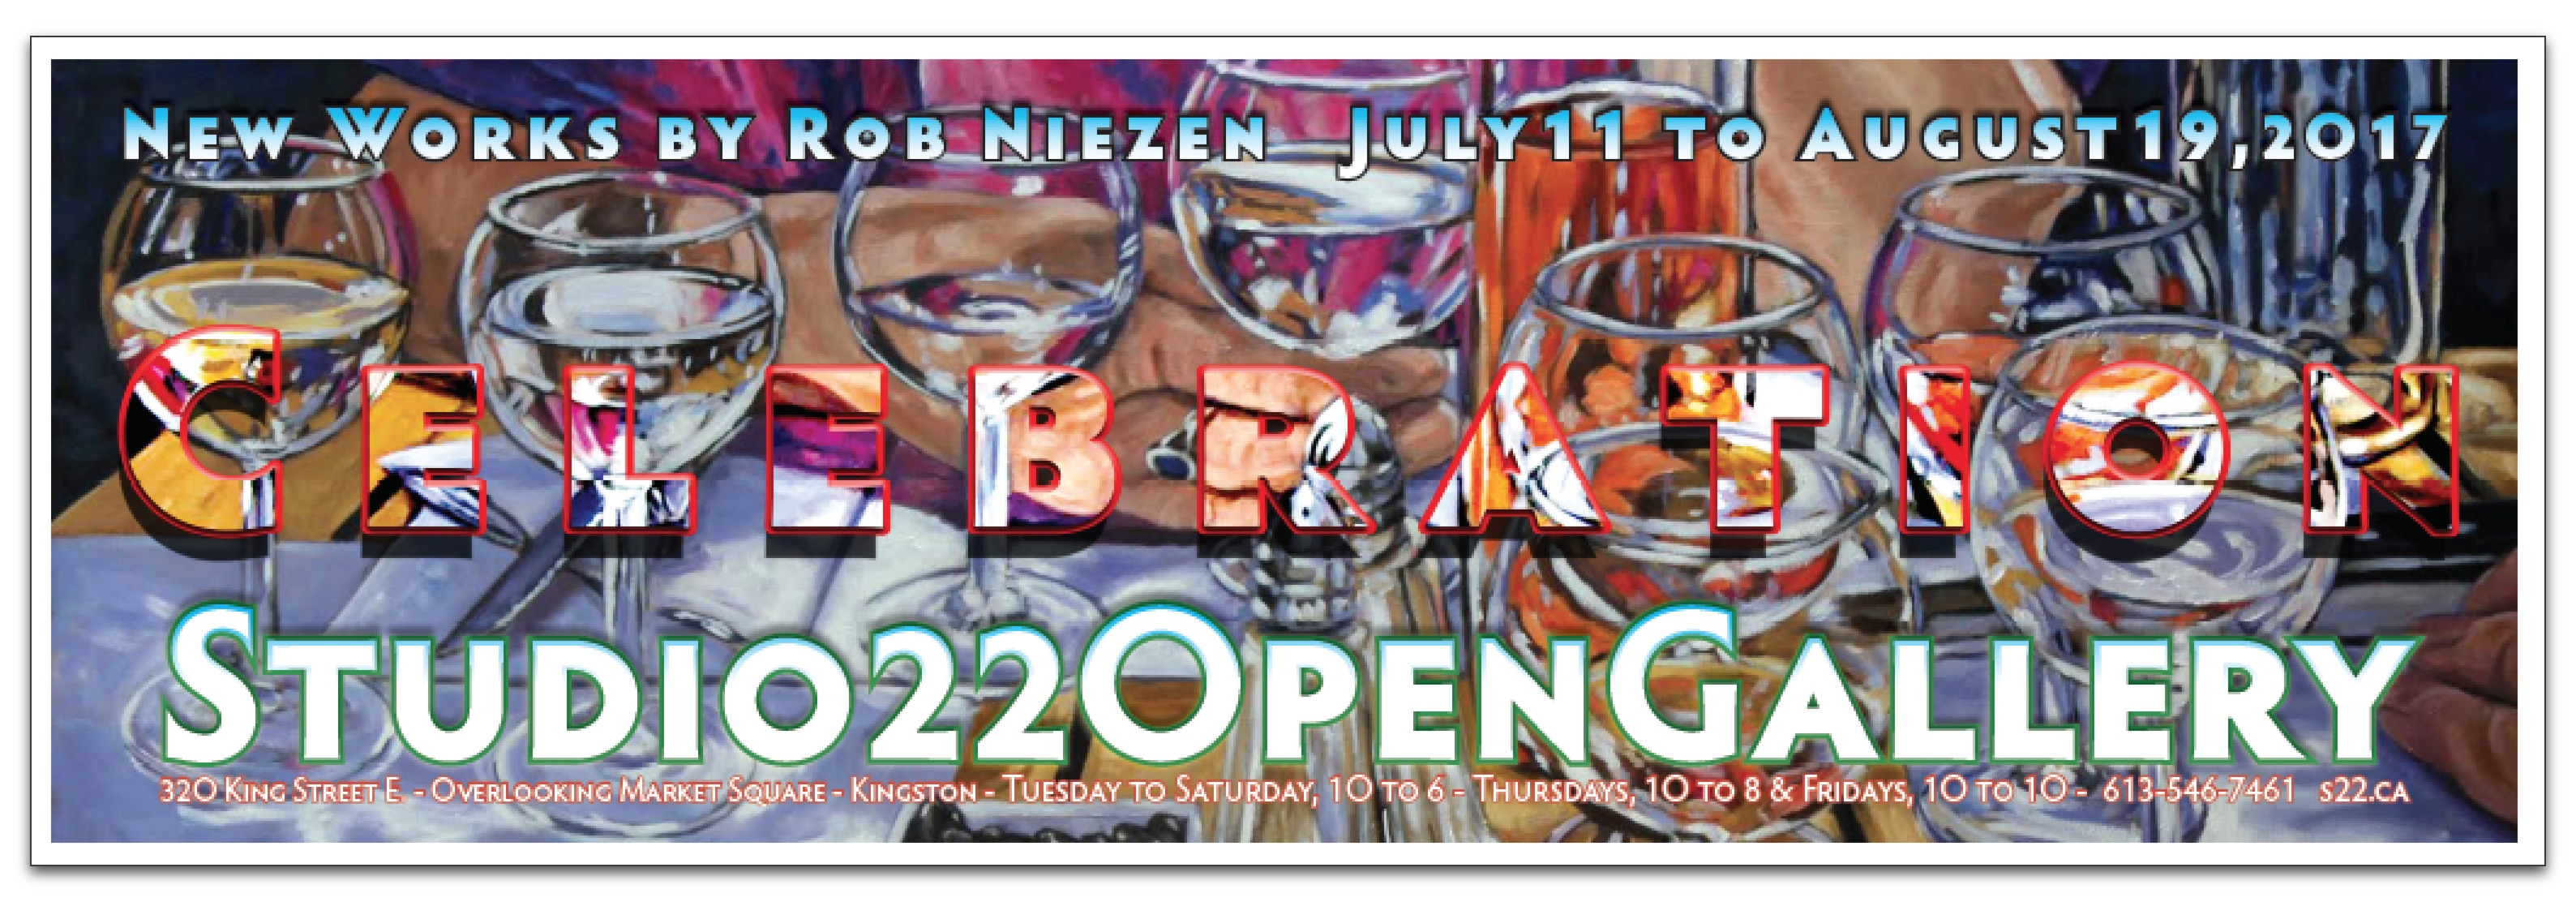 CELEBRATION – New Works by Rob Niezen